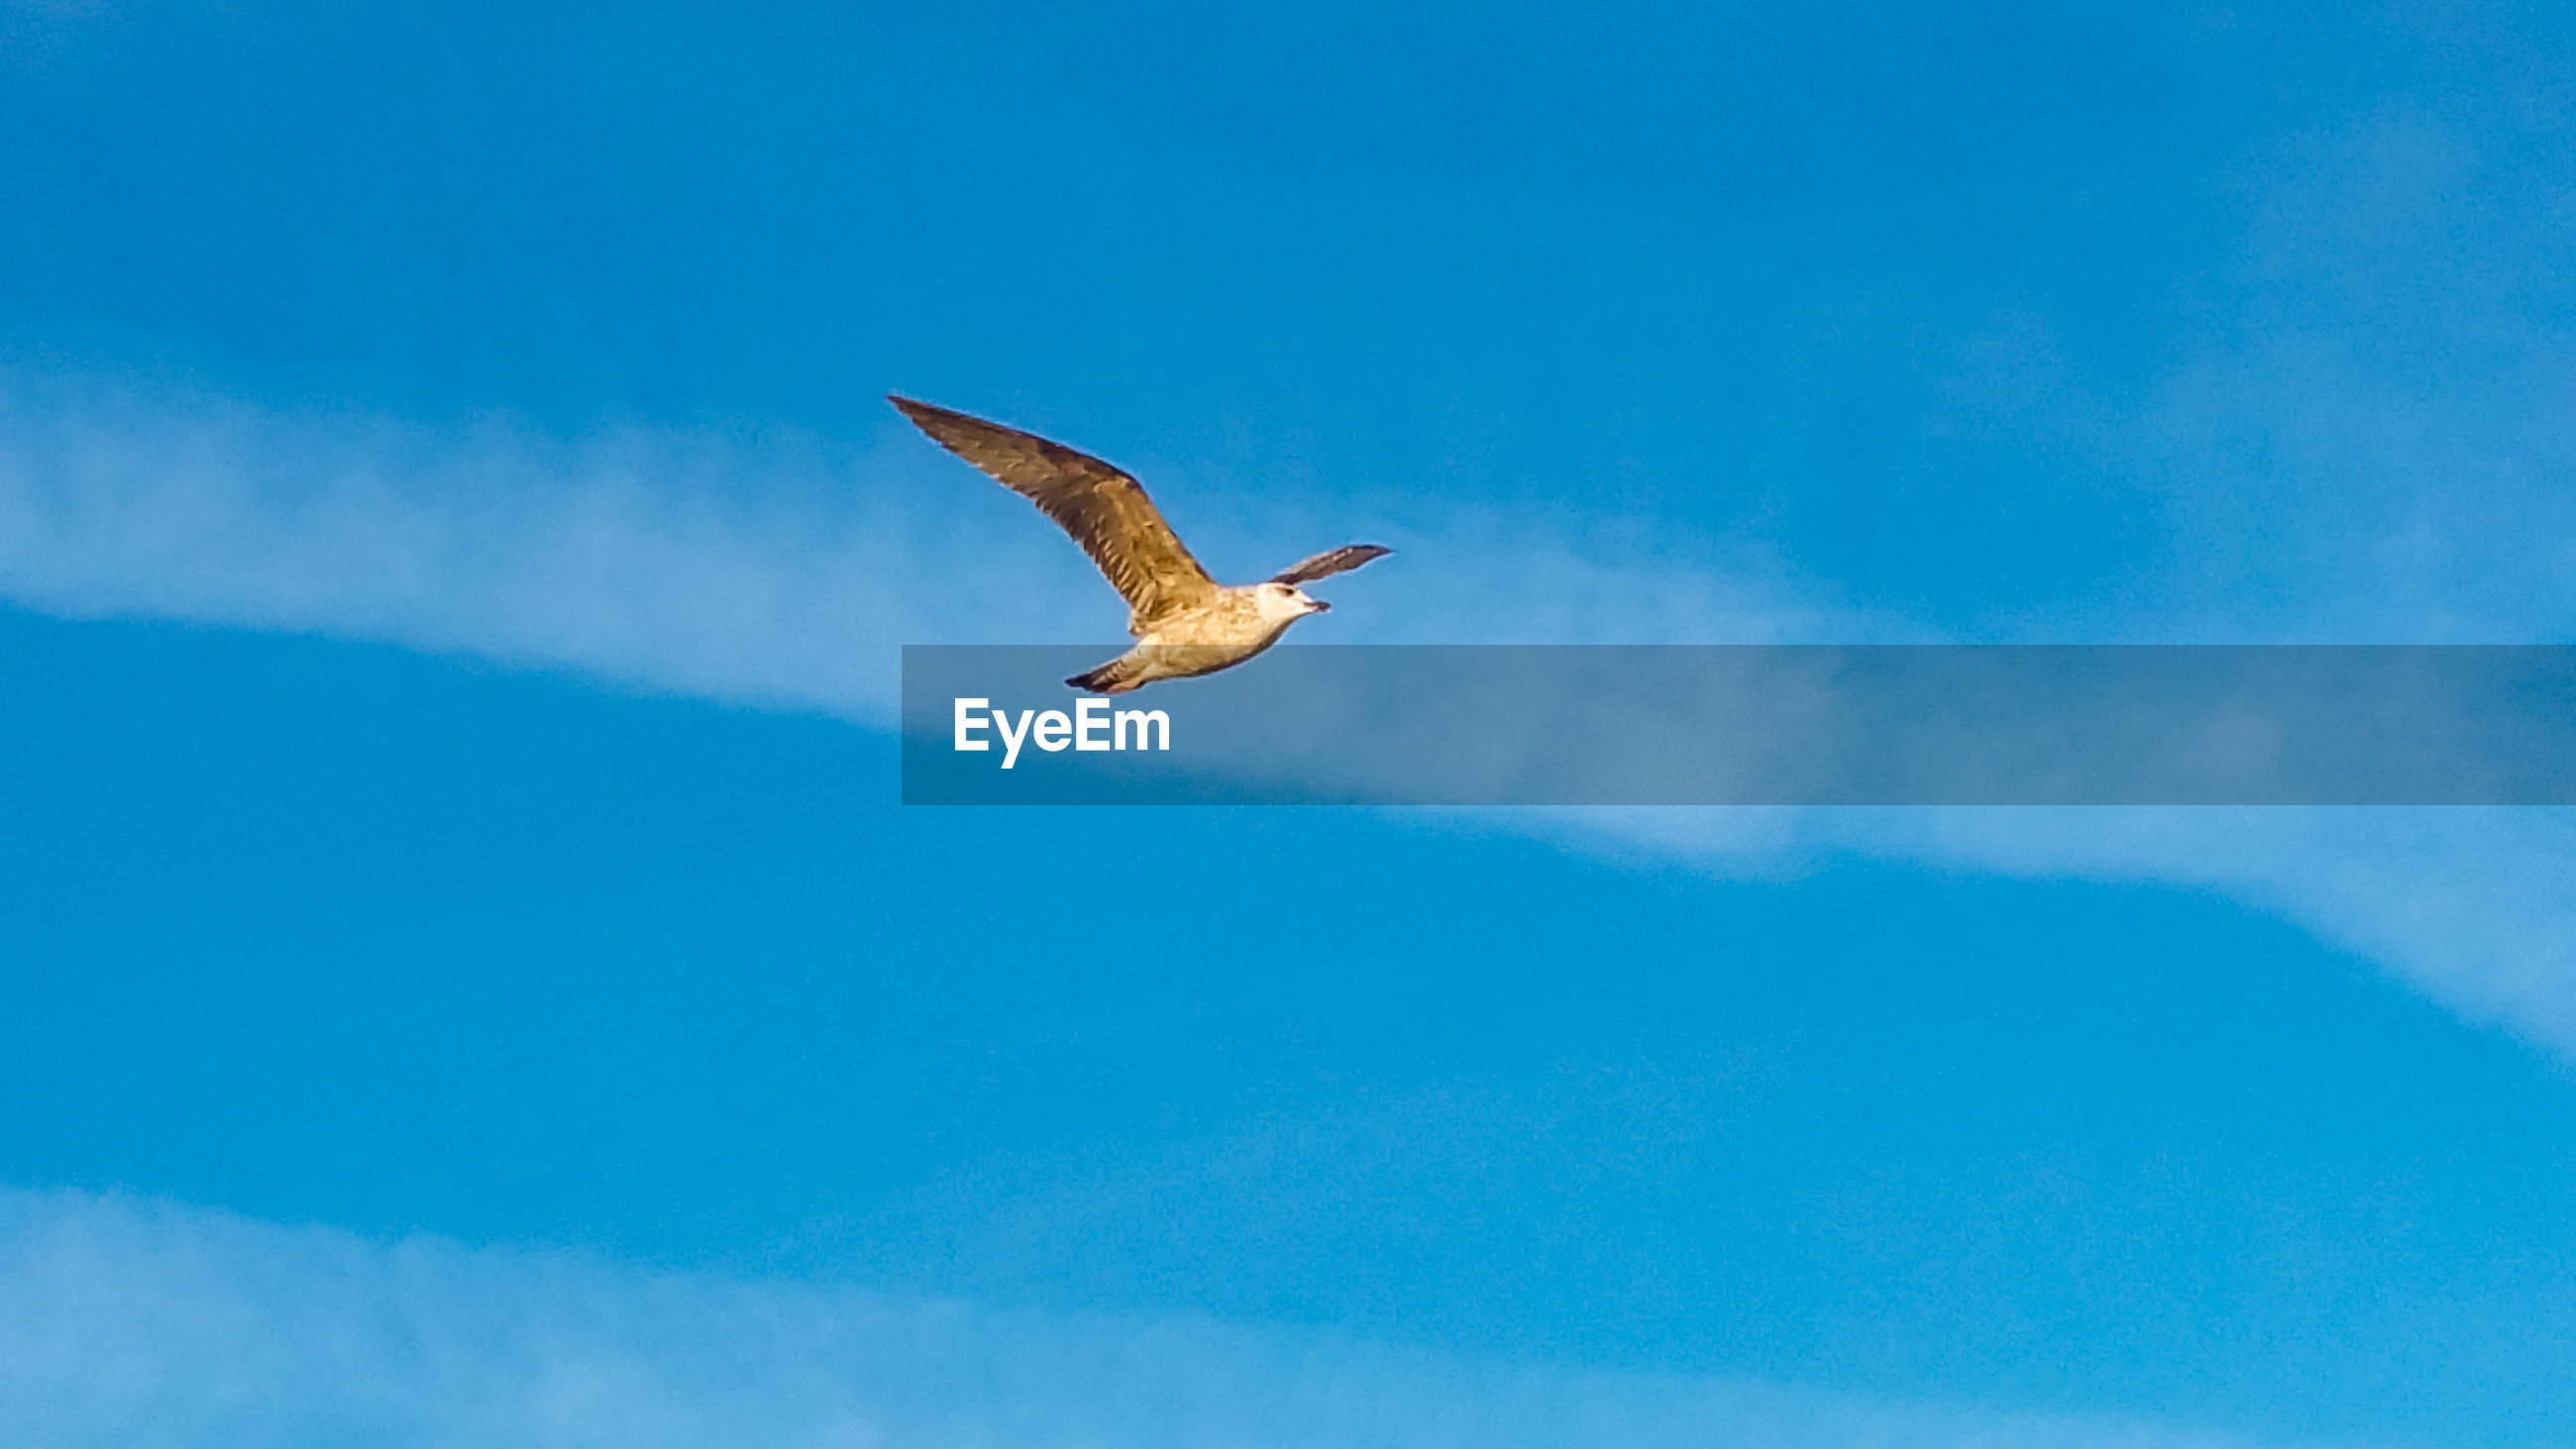 LOW ANGLE VIEW OF A BIRD FLYING IN SKY